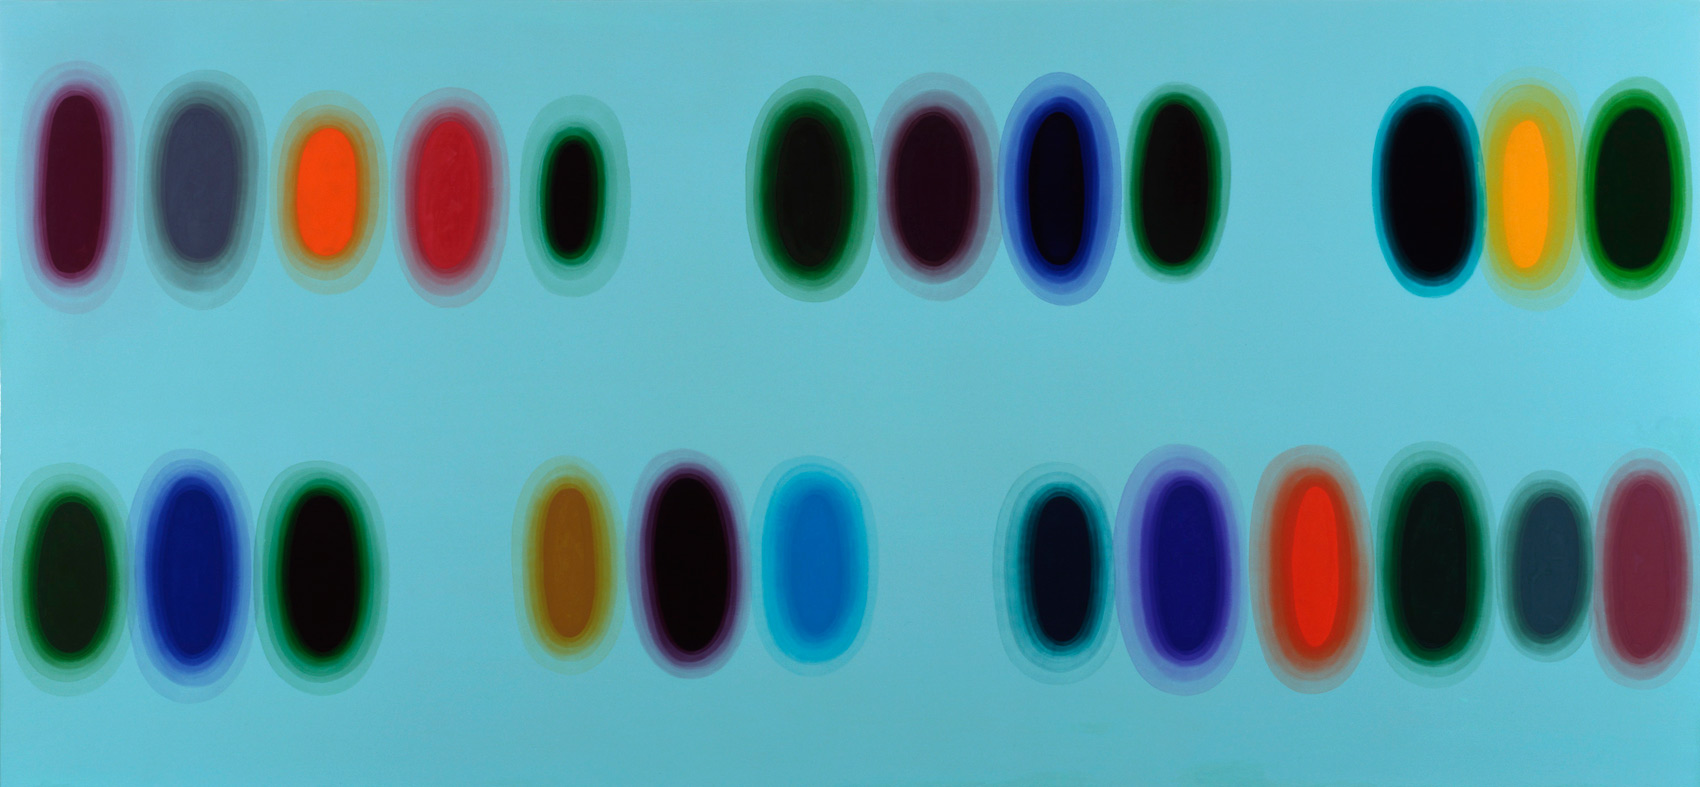 Genetic, 2002, alkyde sur Dibond, 100 x 200 cm